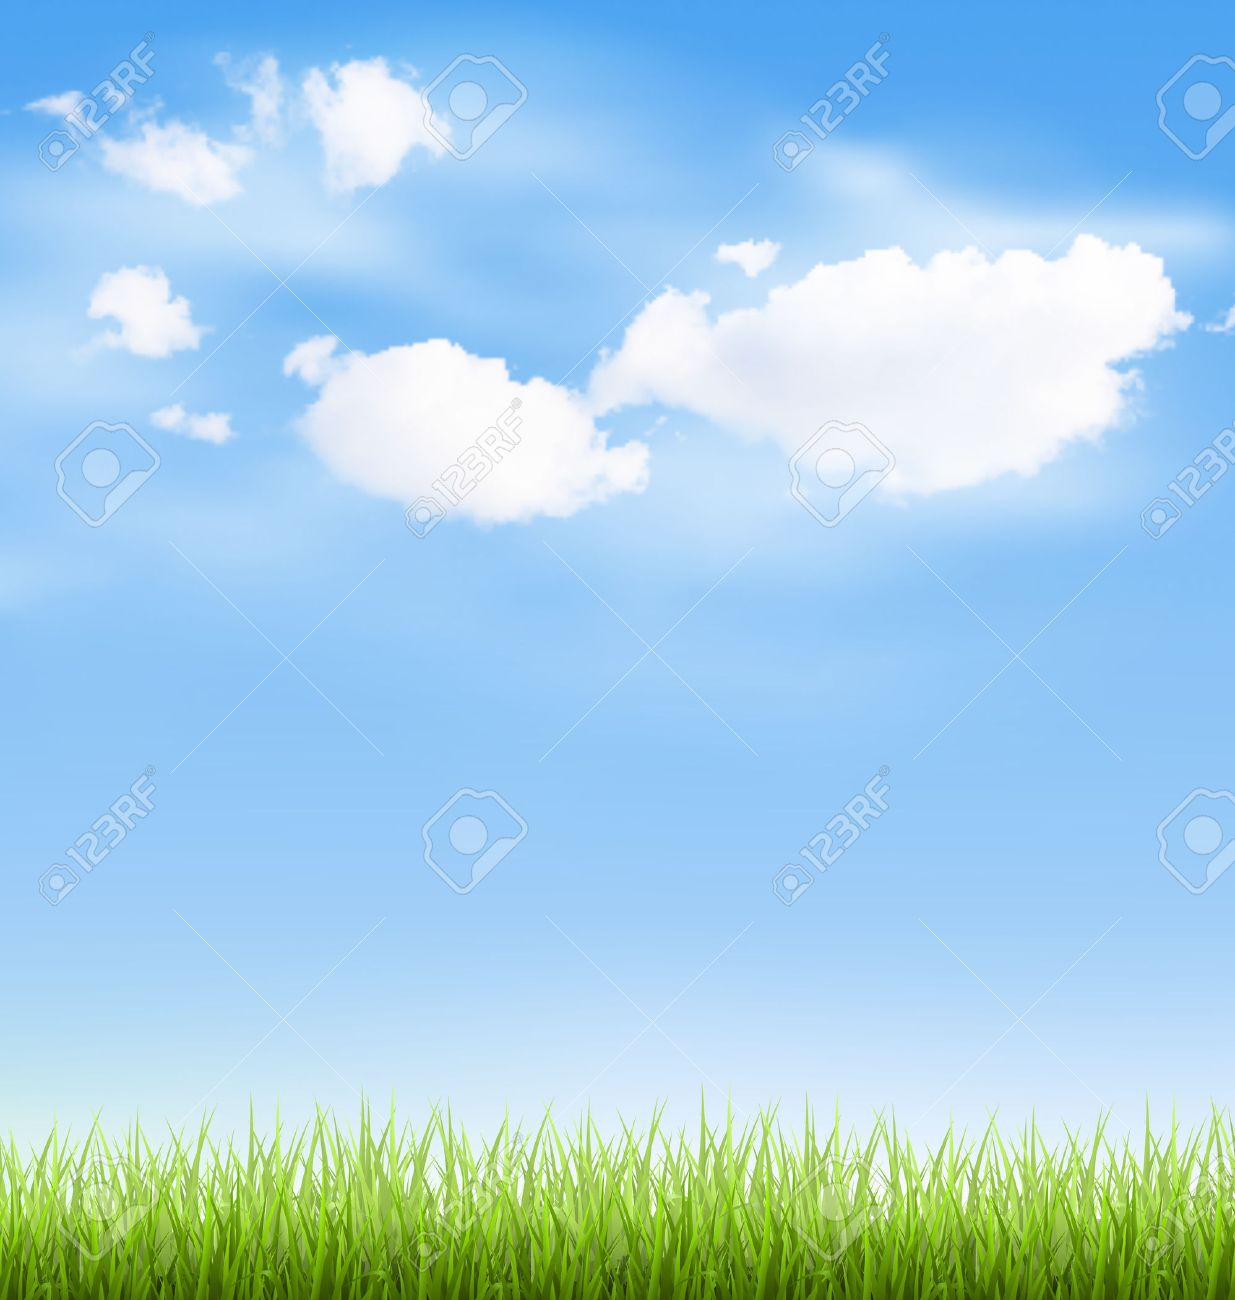 Green grass lawn with clouds on blue sky - 41448048